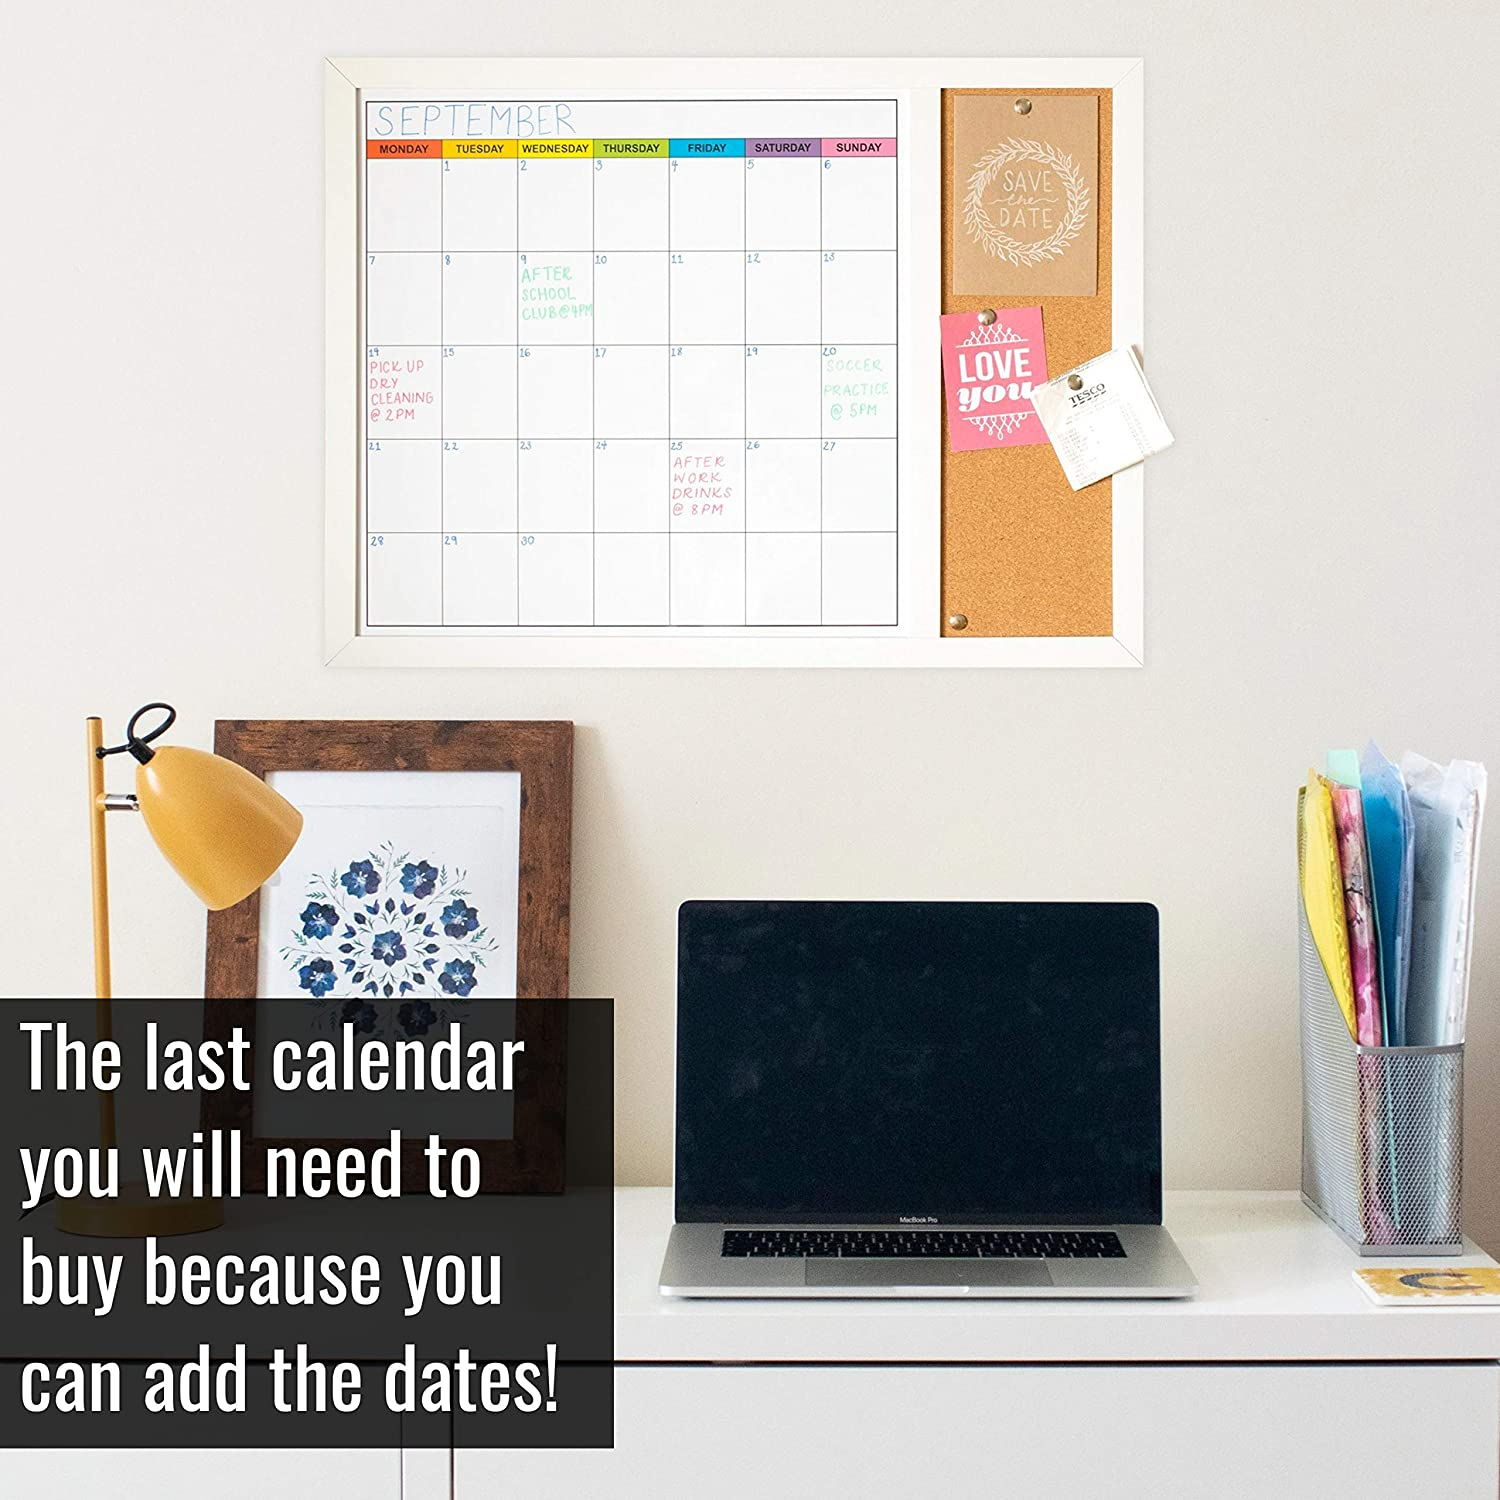 - Magnetic Whiteboard Calendar with Small Cork Board 18in x 24in White Board Dry Erase Monthly Calendar and Notes Dry Erase Calendar Board for Wall Wood Framed Calendar Whiteboard